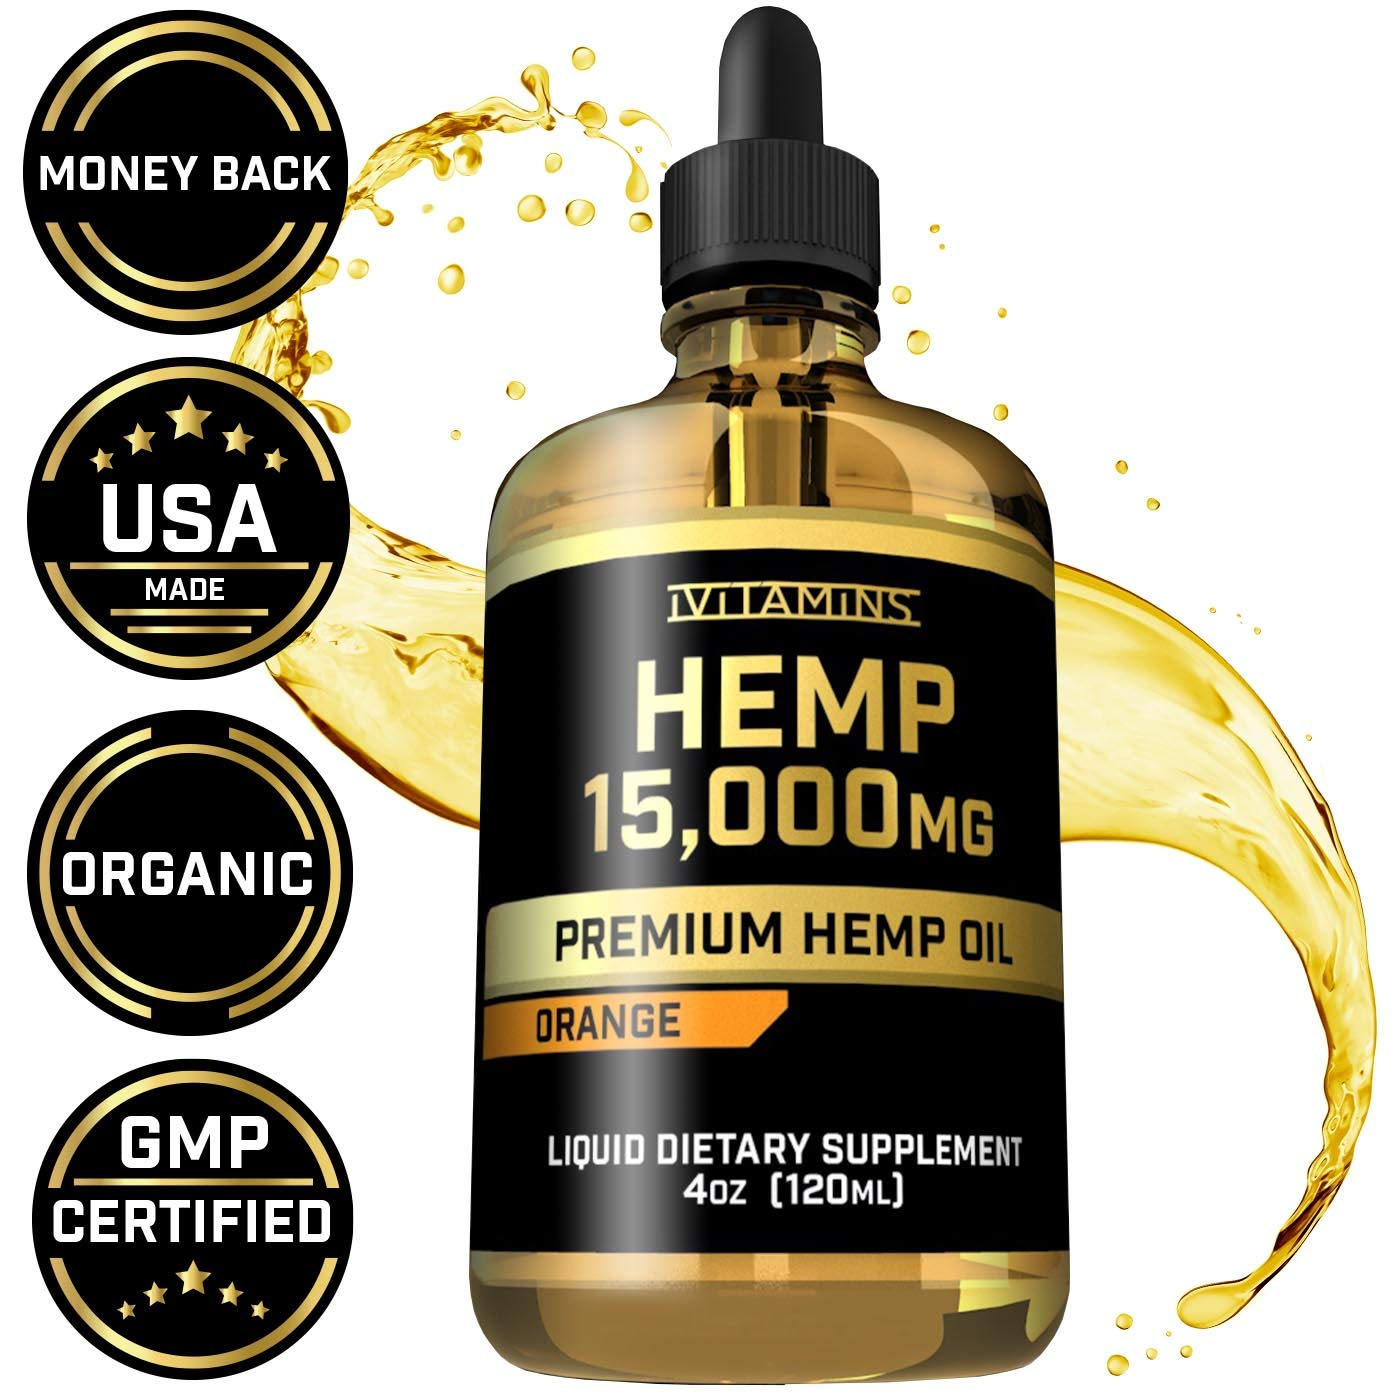 Hemp Oil Drops for Pain & Anxiety - 15,000mg - May Help with Stress, Inflammation, Pain, Sleep, Anxiety, Depression, Nausea + More - Zero THC CBD Cannabidoil - Rich in Omega 3,6,9